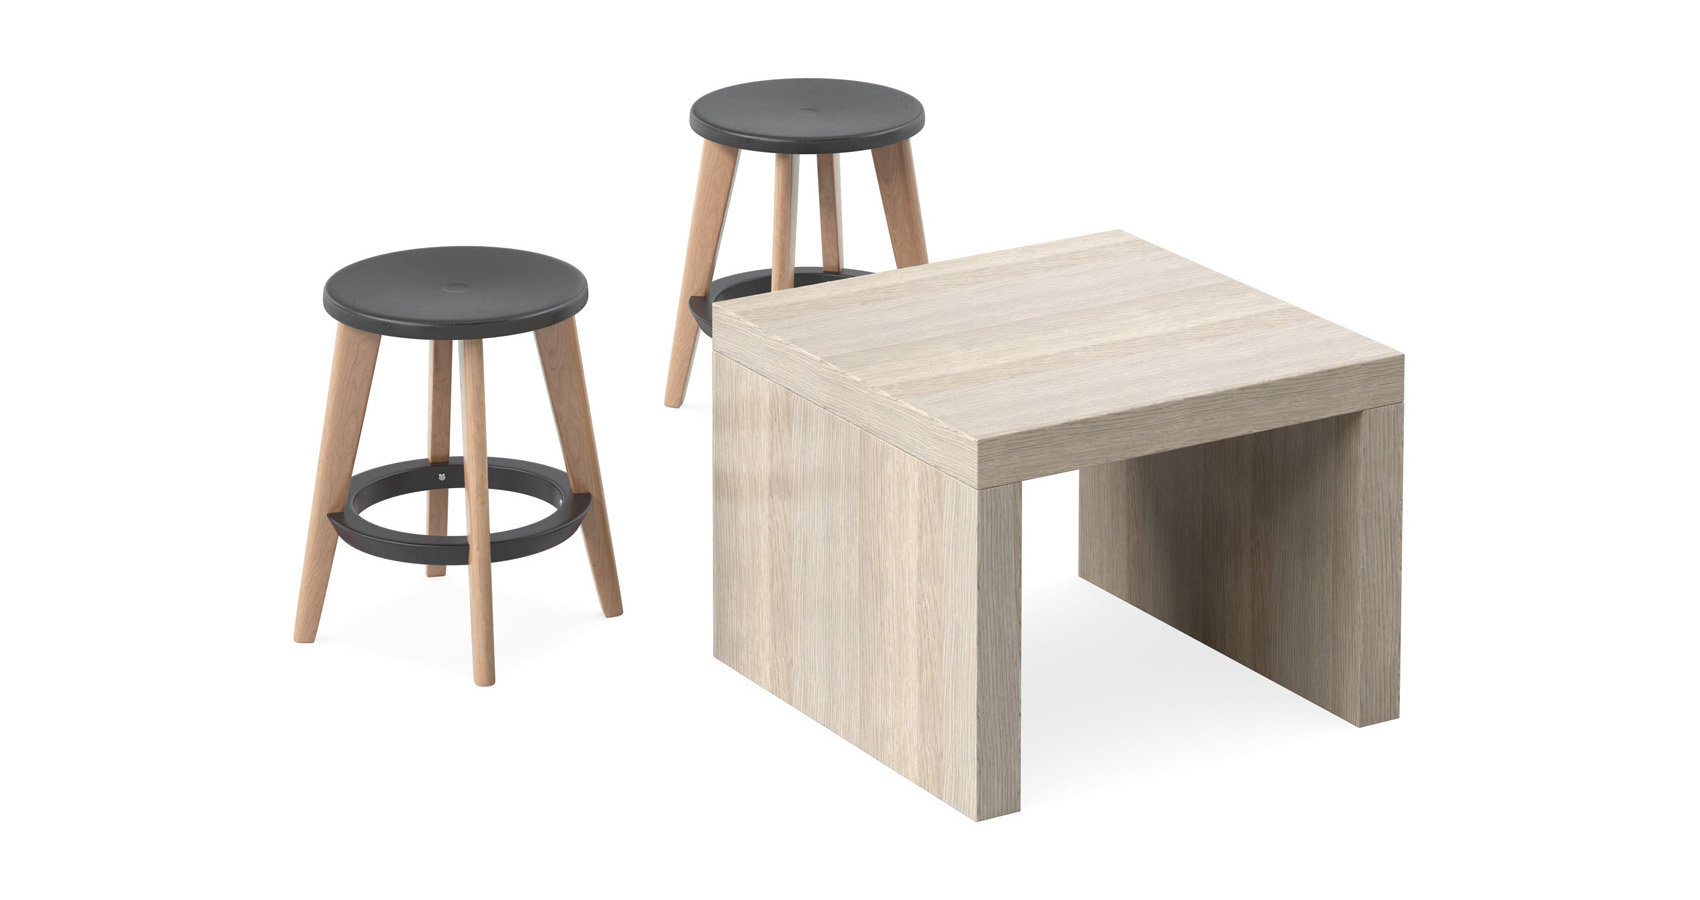 Jive Coffee Table with Pac stools